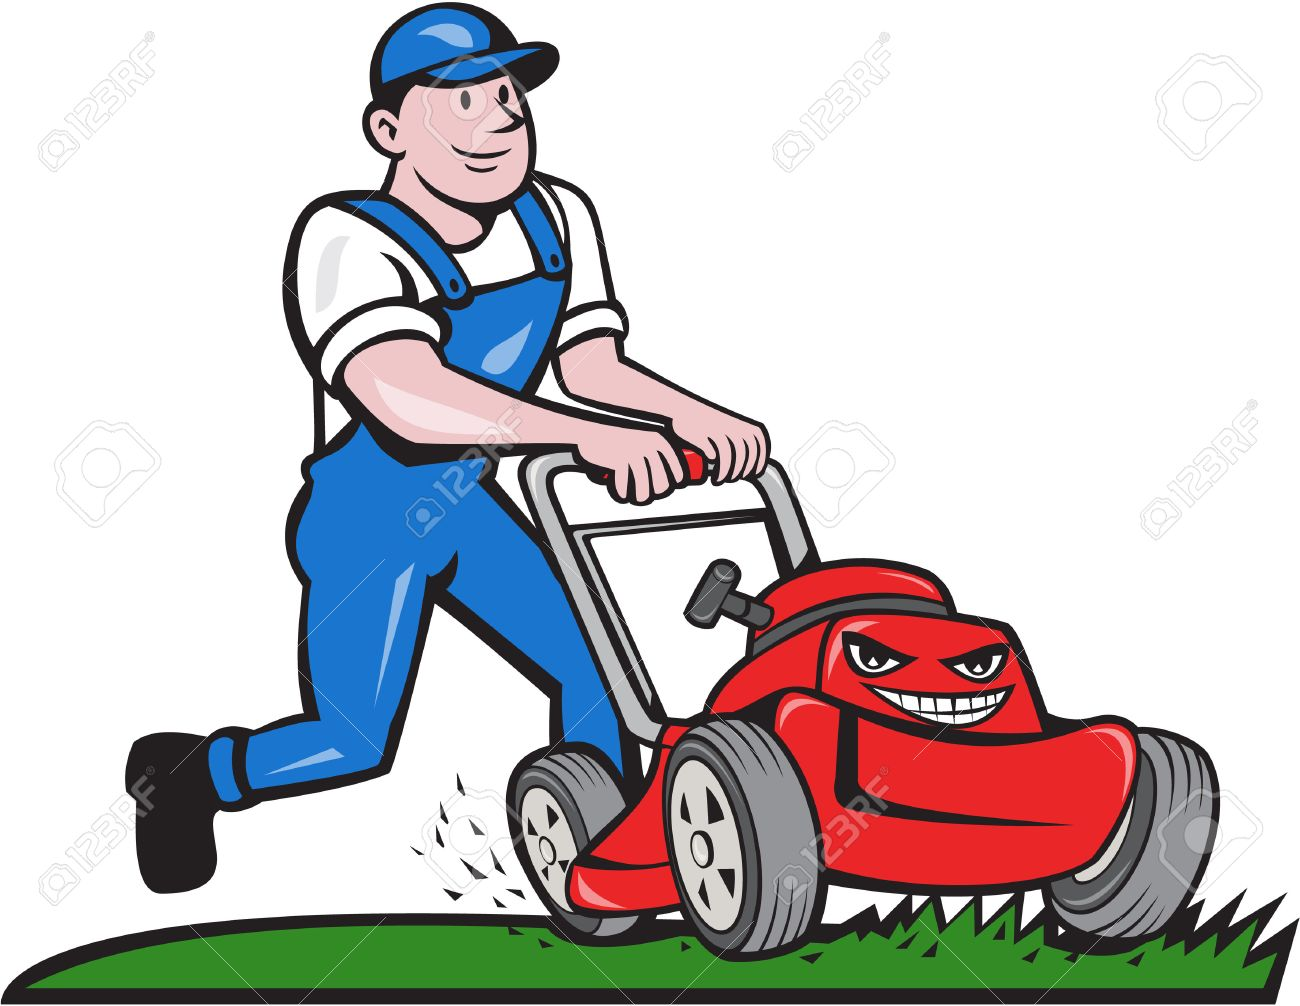 Illustration of a gardener wearing hat and overalls with lawnmower mowing lawn viewed from front set on isolated white background done in cartoon style. - 49066608